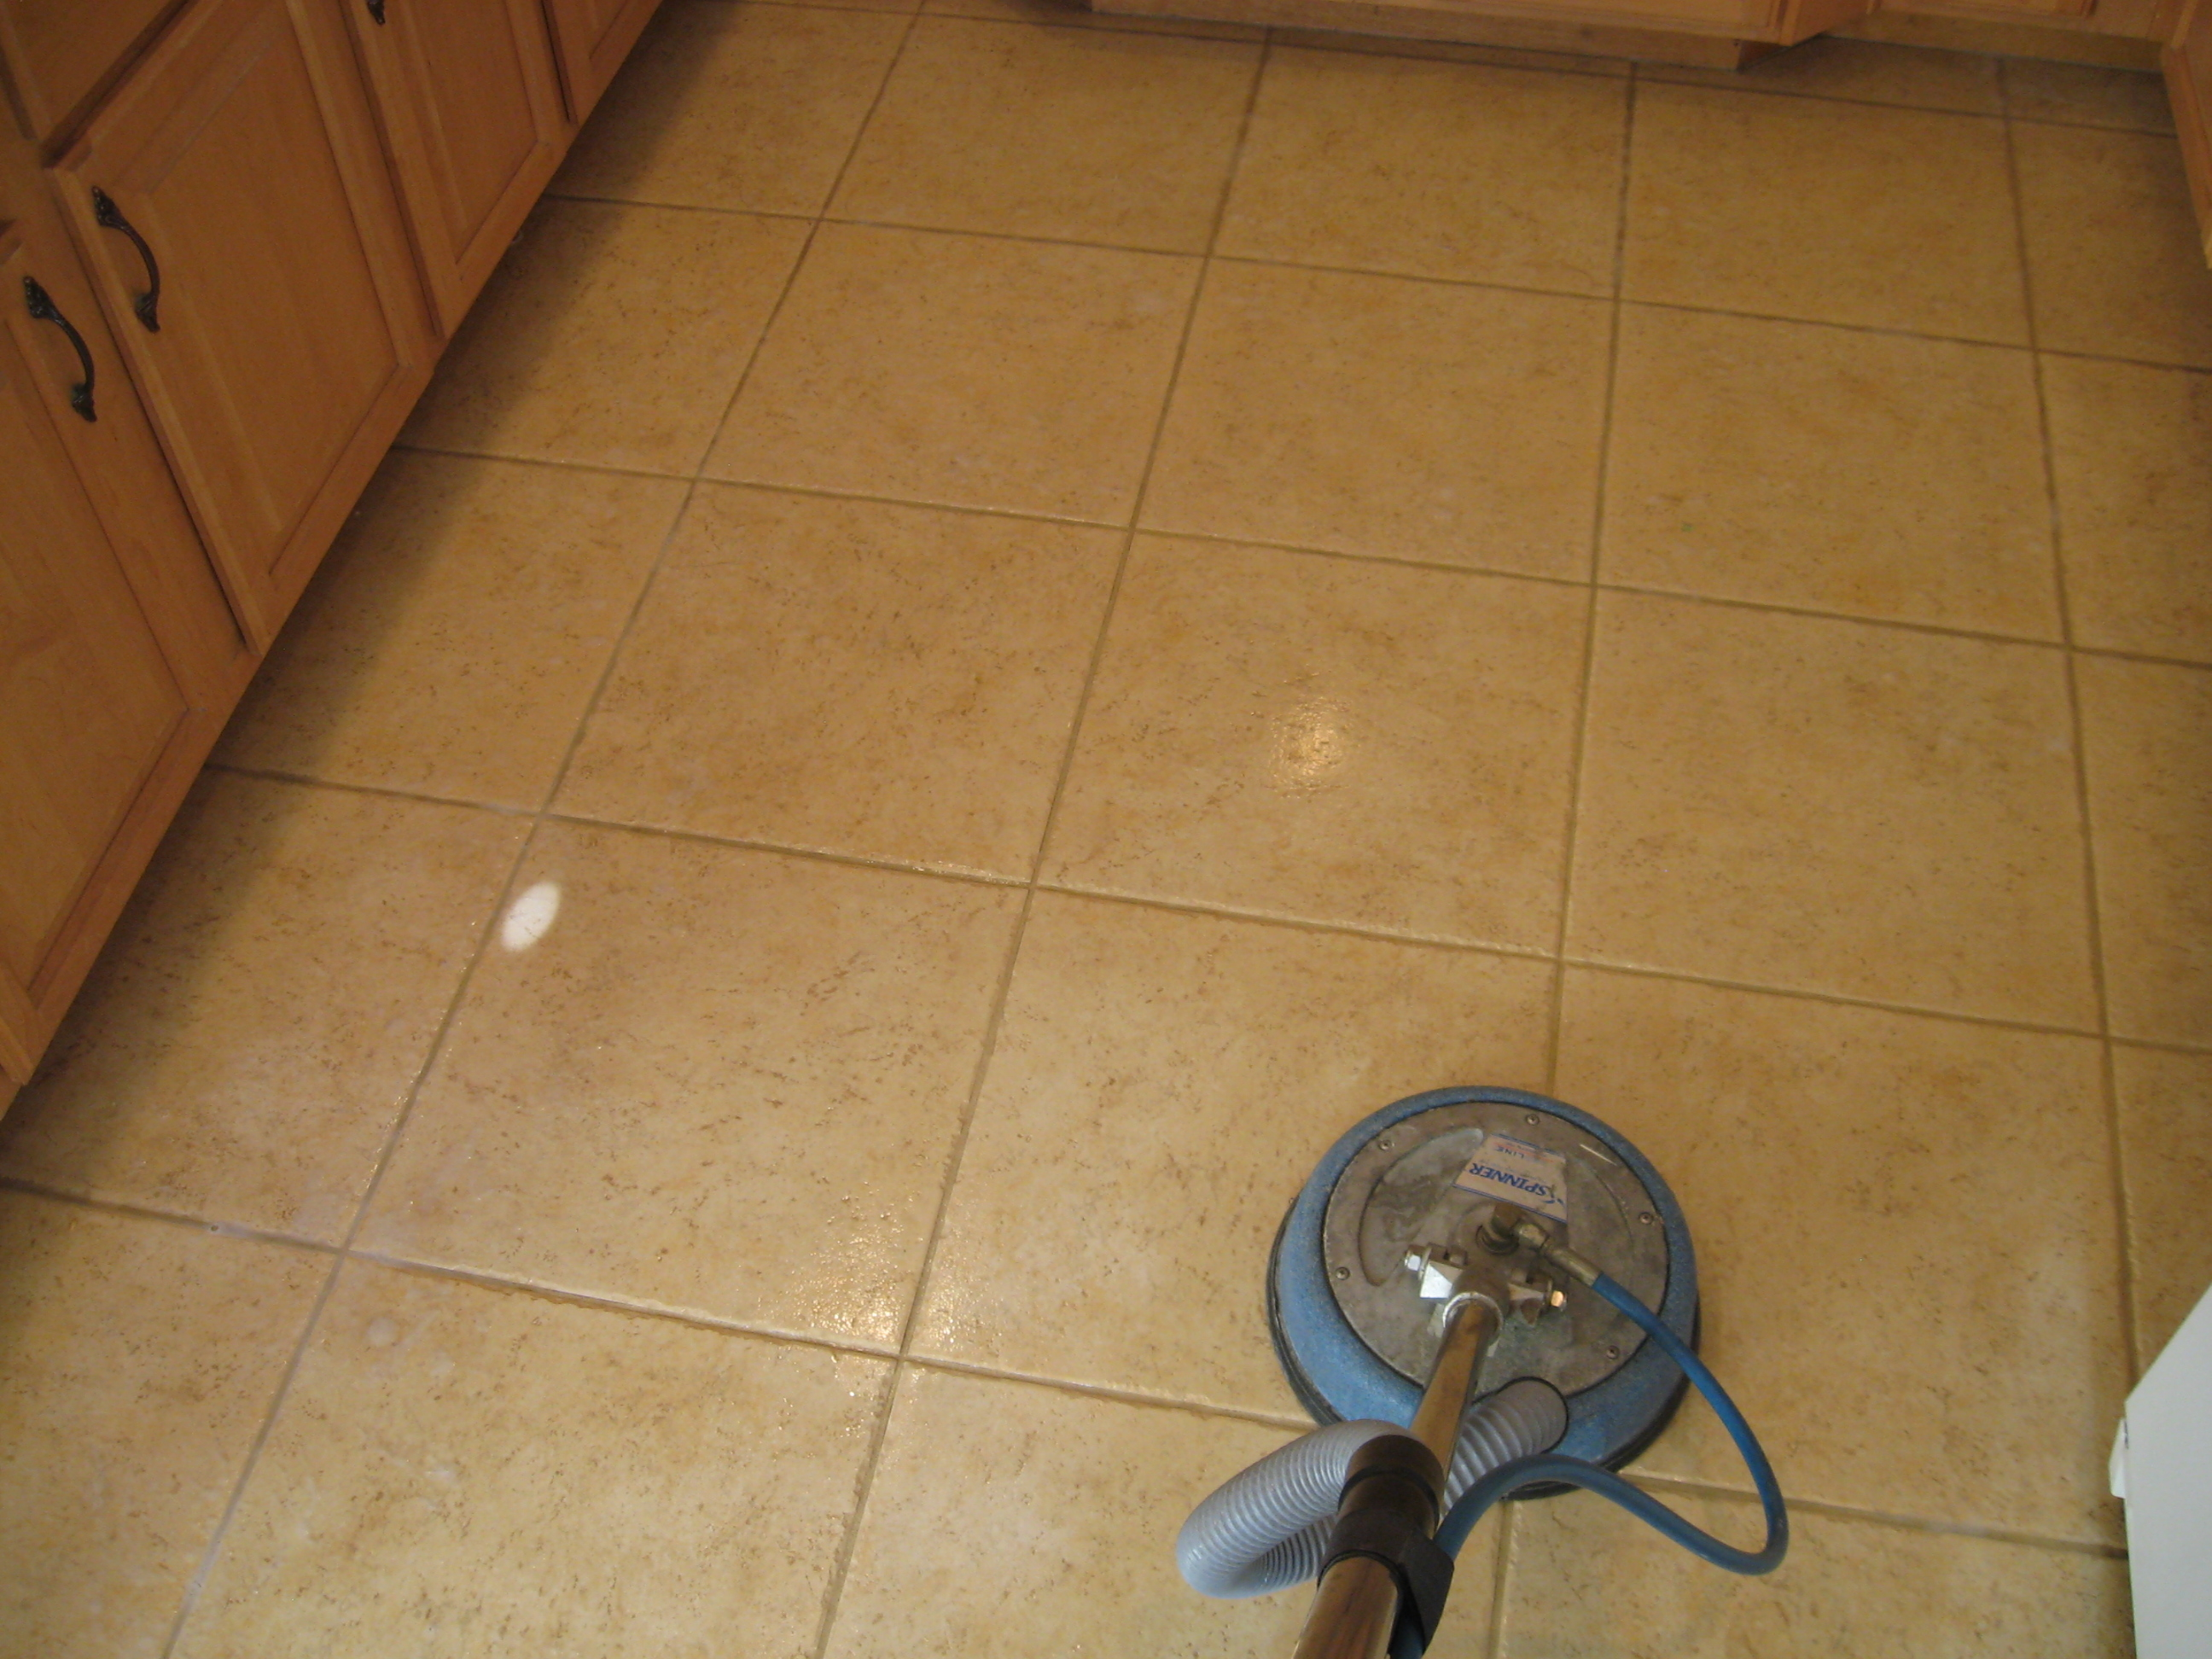 Patriot Carpet Cleaning image 3